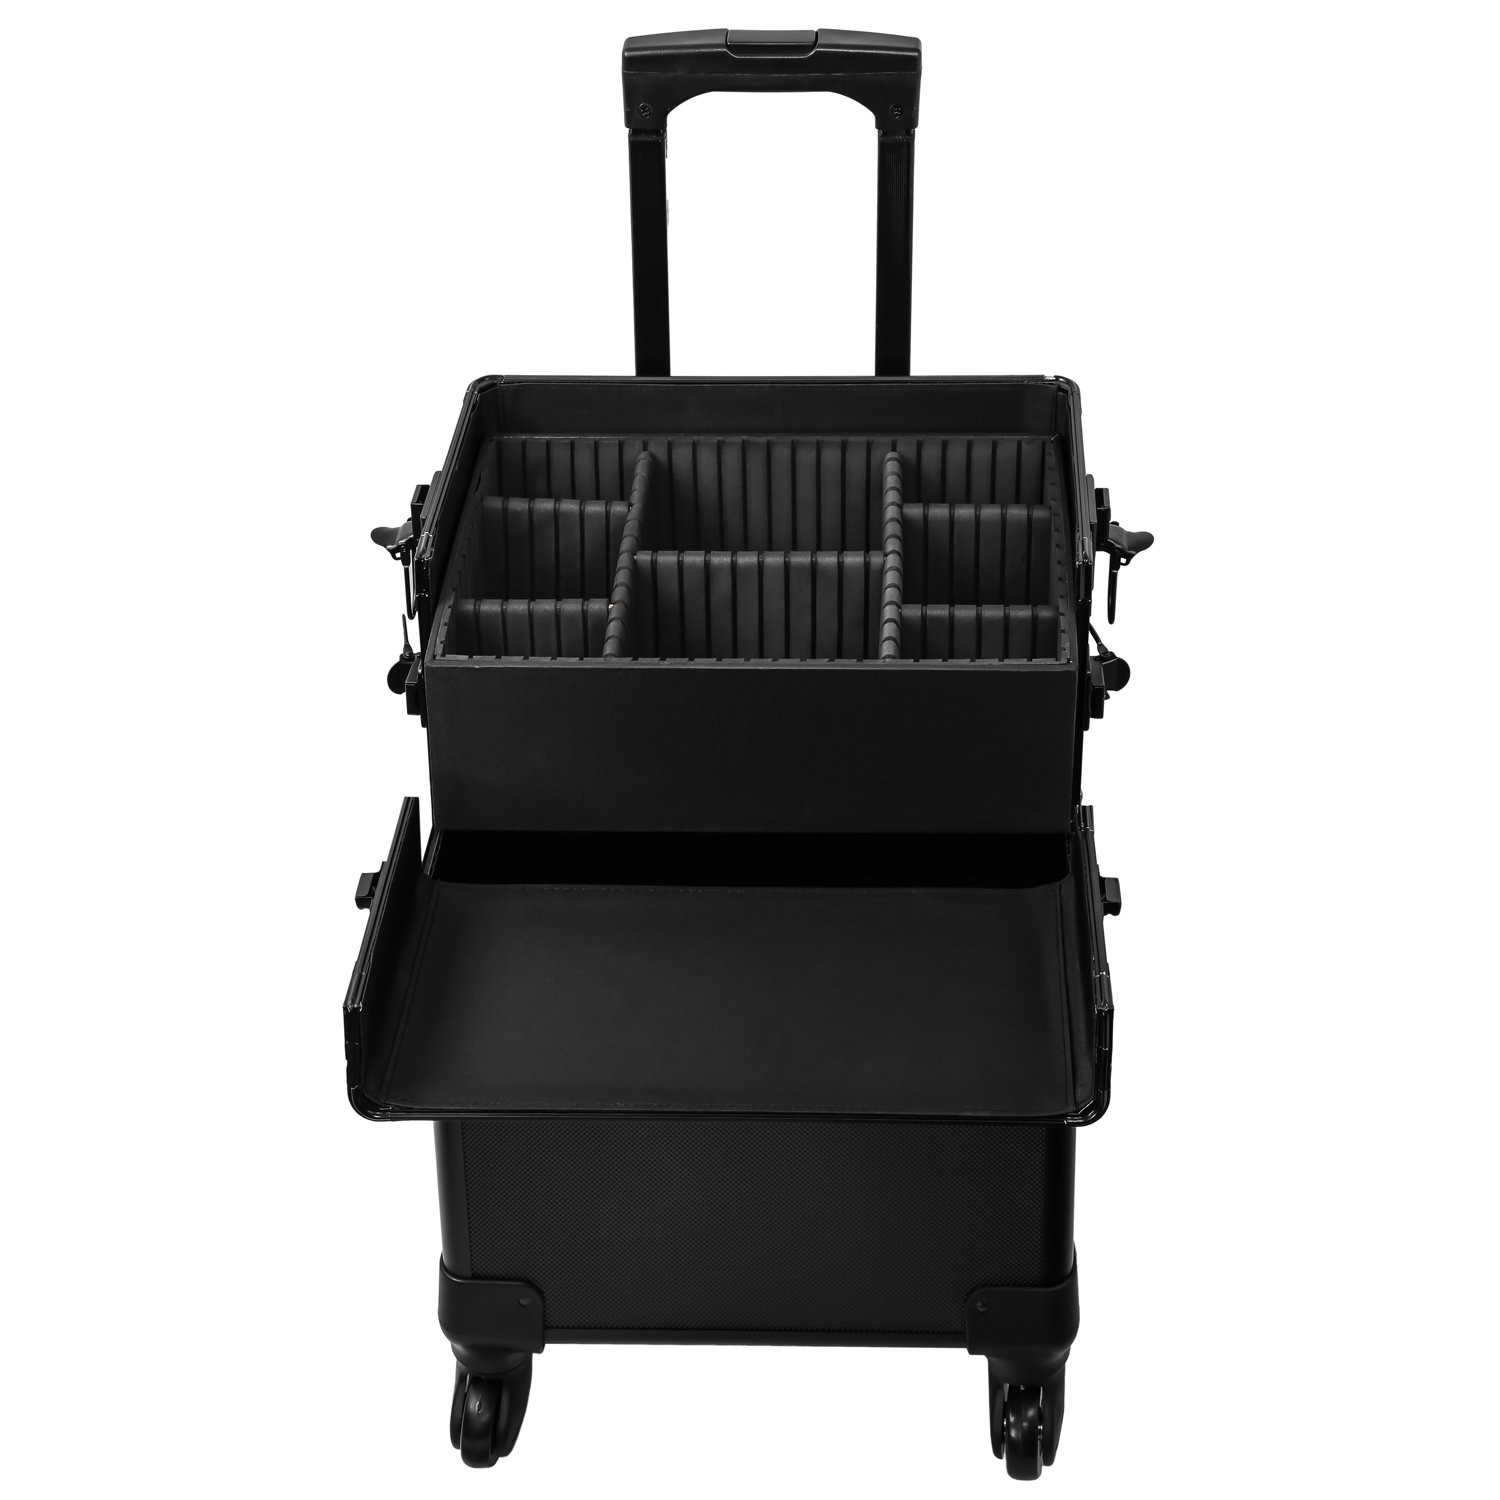 Koval Inc. 4-wheel Rolling 2in1 Makeup Train Cosmetic Case Black by KOVAL INC. (Image #9)